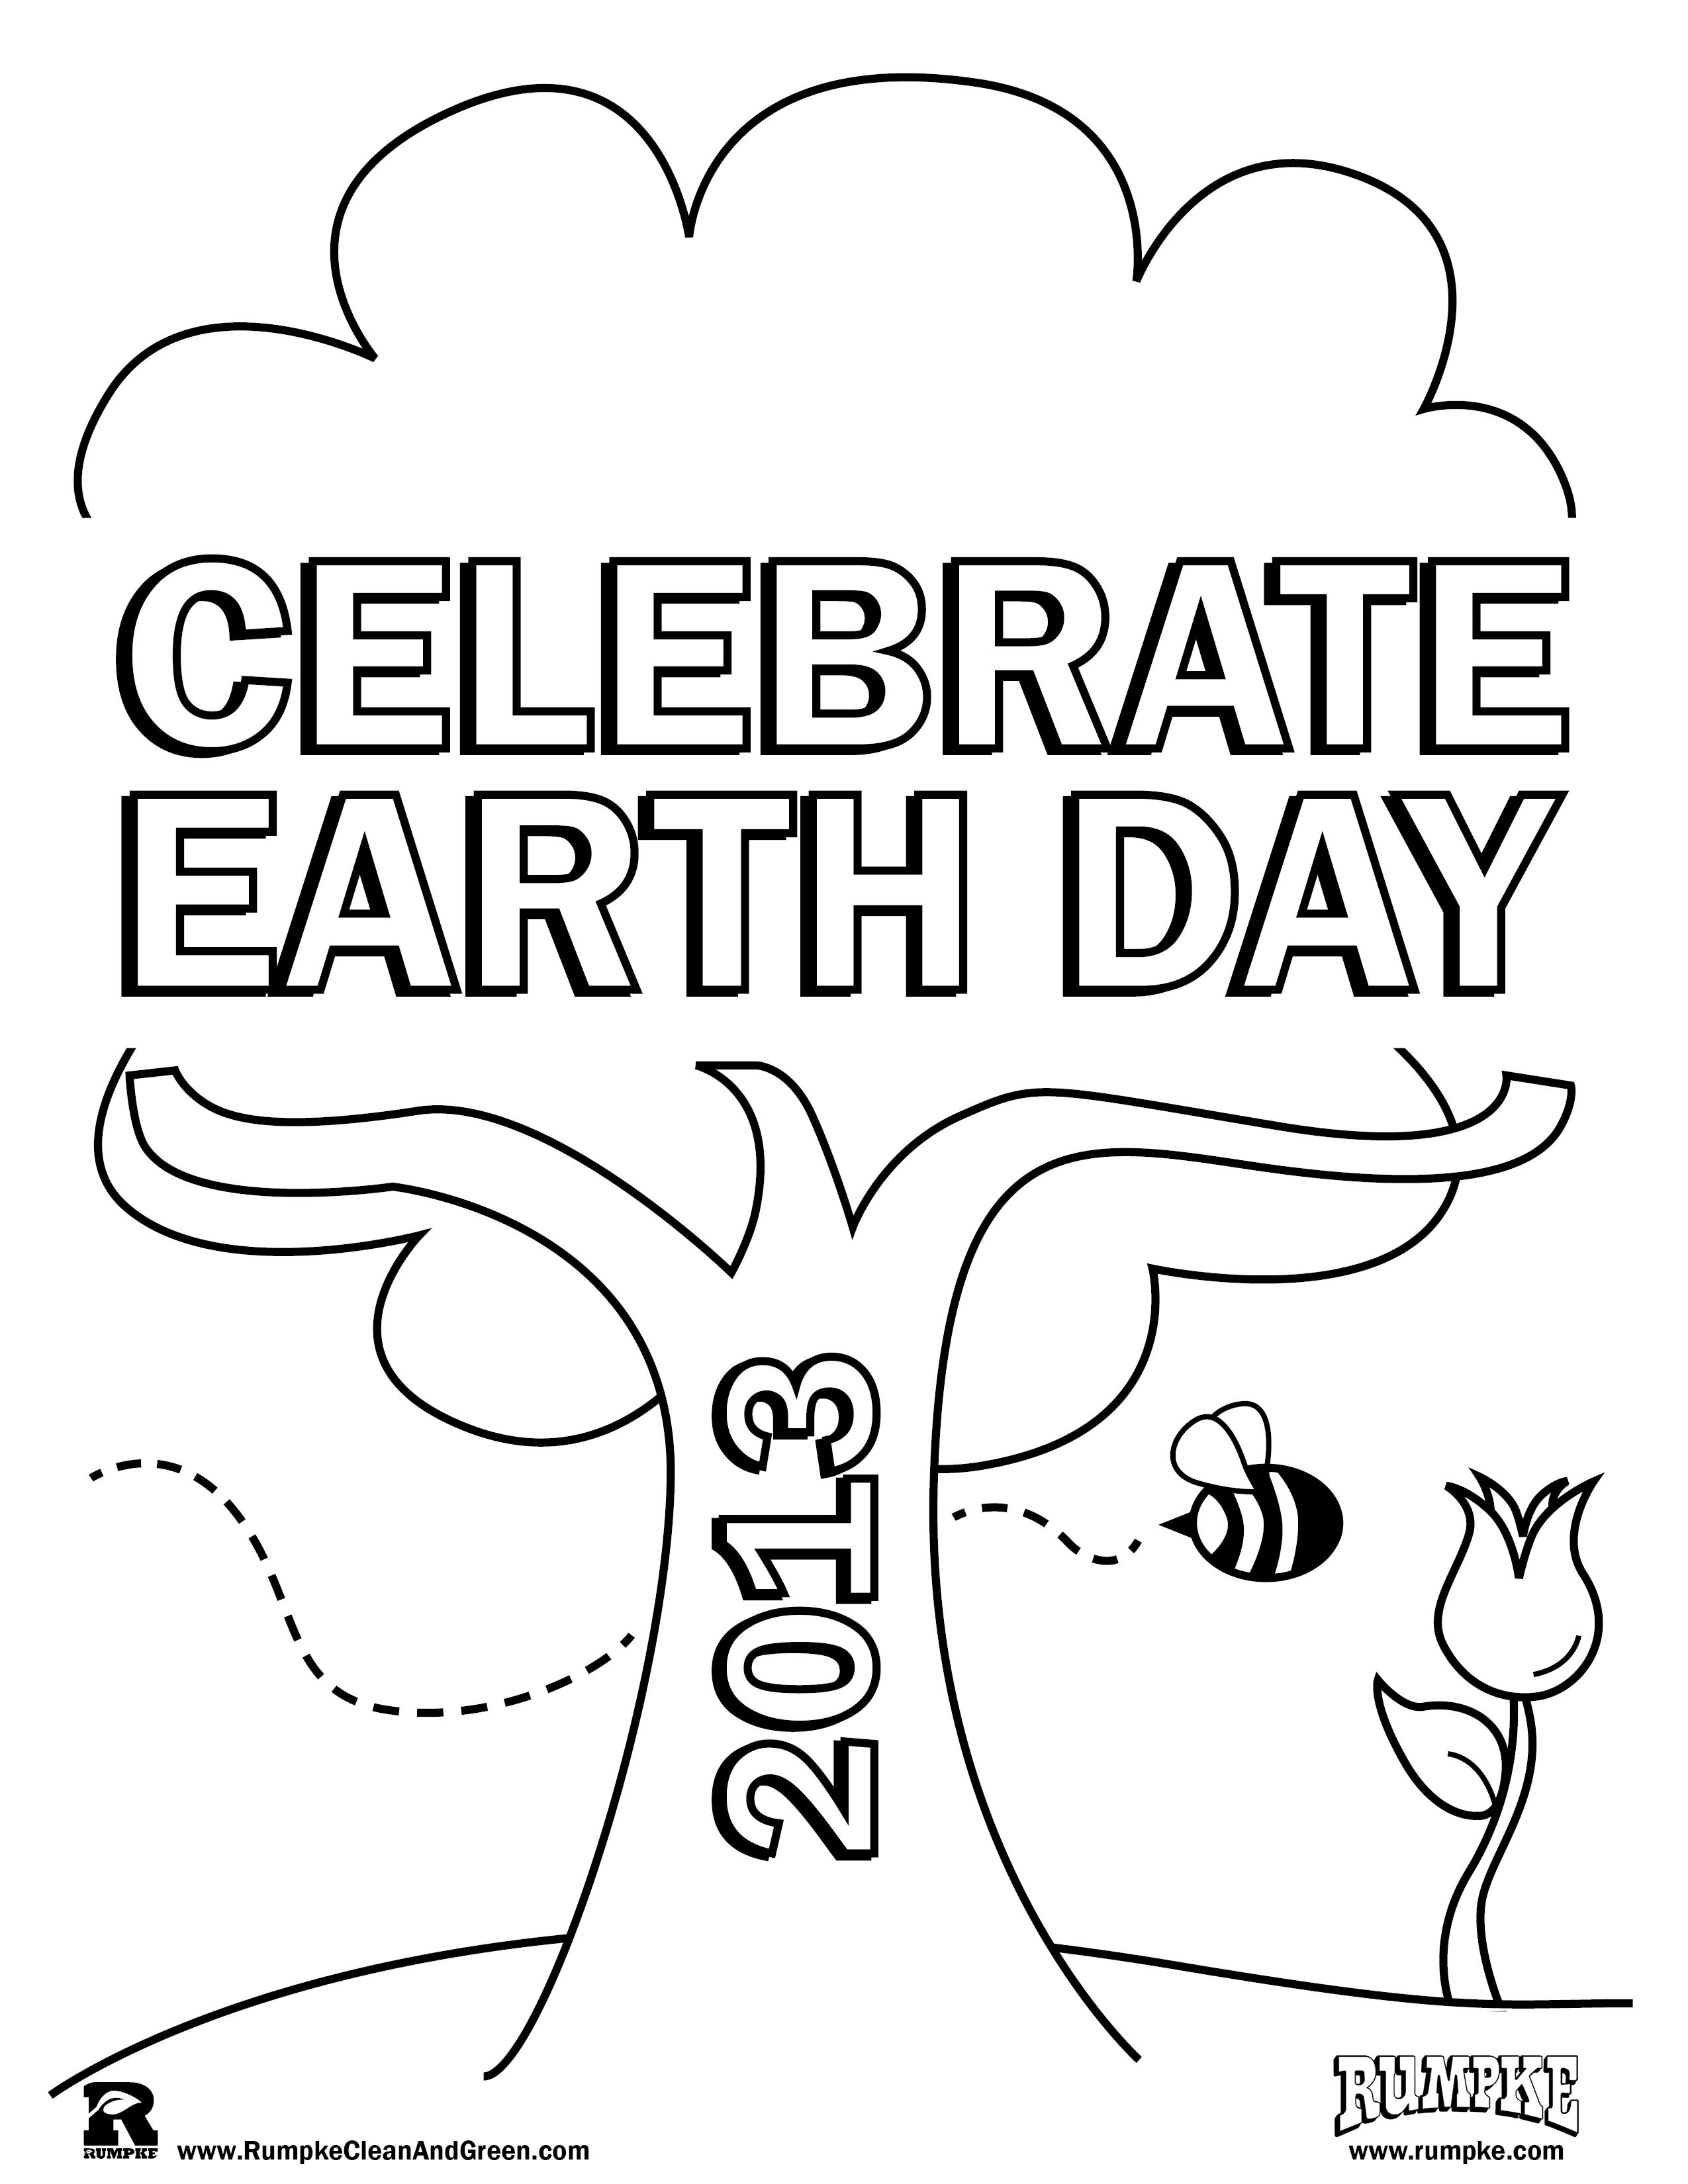 Celebrate Earth Day Free Printable Coloring Sheet Earthday Earthmonth Rumpke Recycle